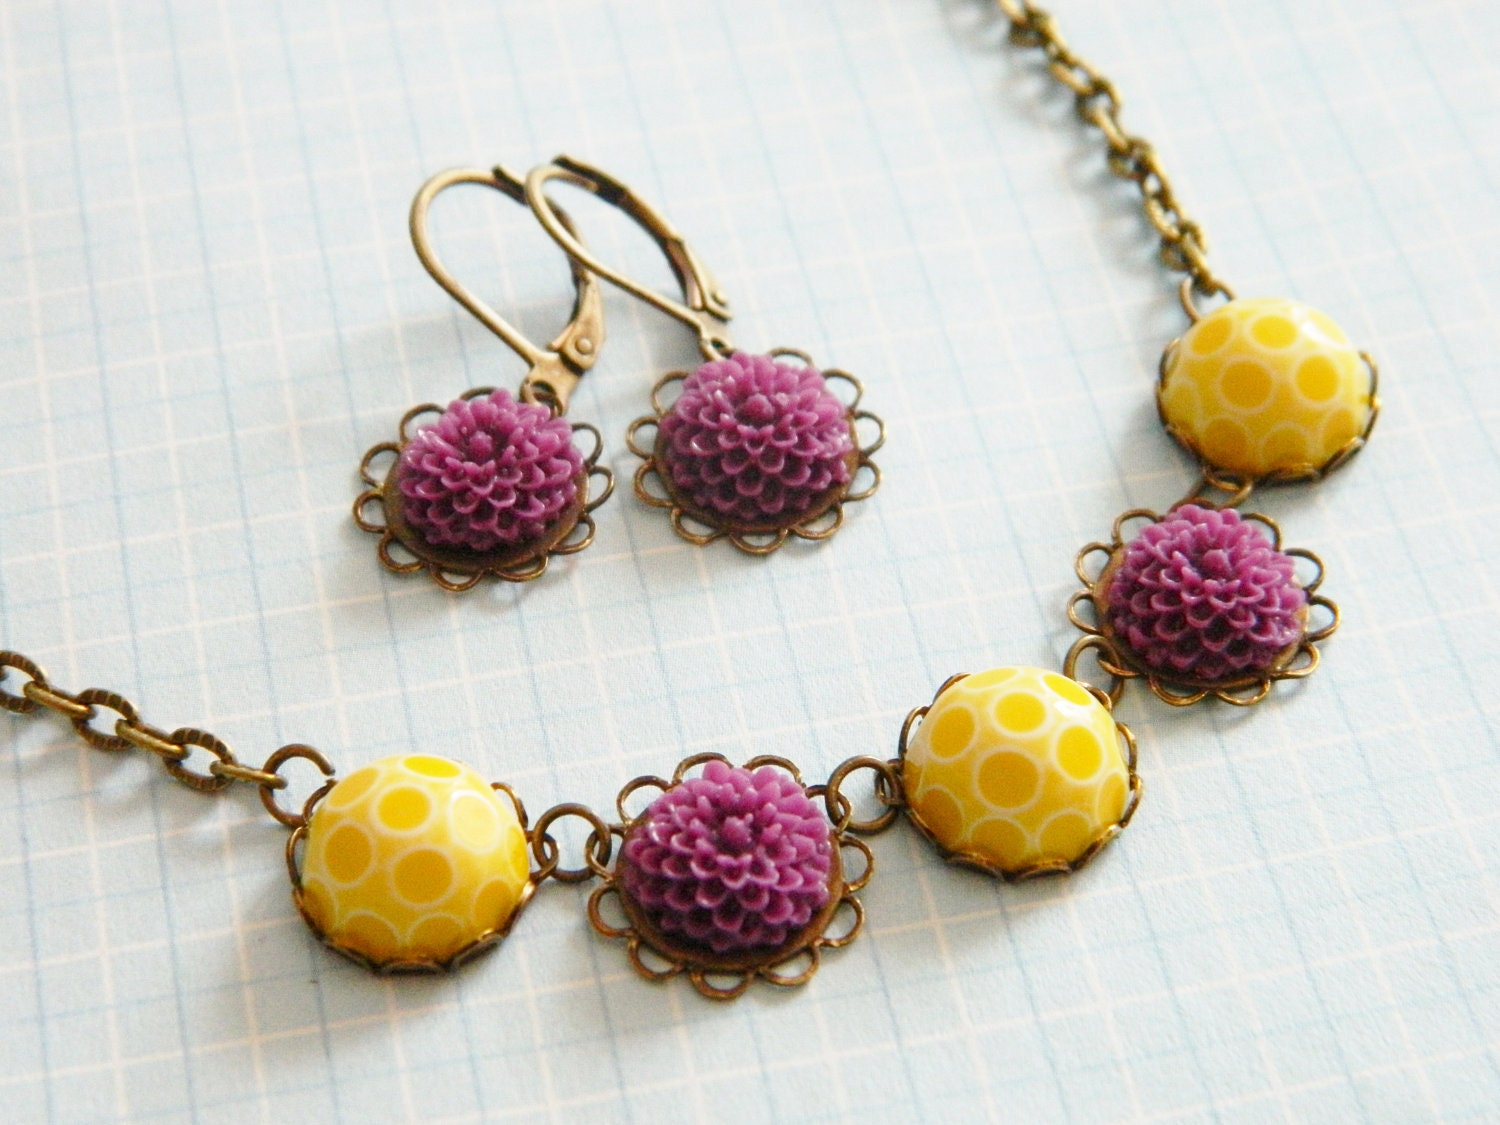 Necklace & Earrings Set Vintage Yellow Honeycomb and Violet Flowers - Sweet Dahlia Honey